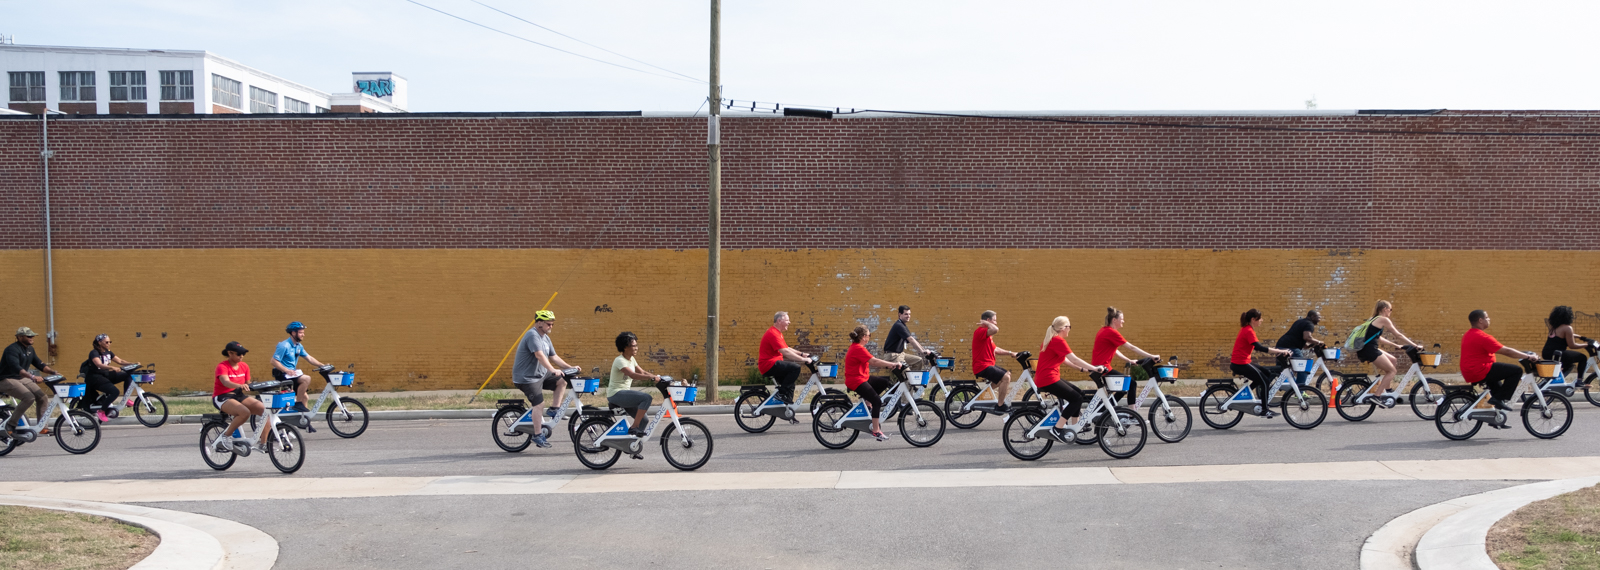 Explore Bike Share cyclists set out along Keel Avenue.  <span class='image-credits'>Brandon Dahlberg</span>